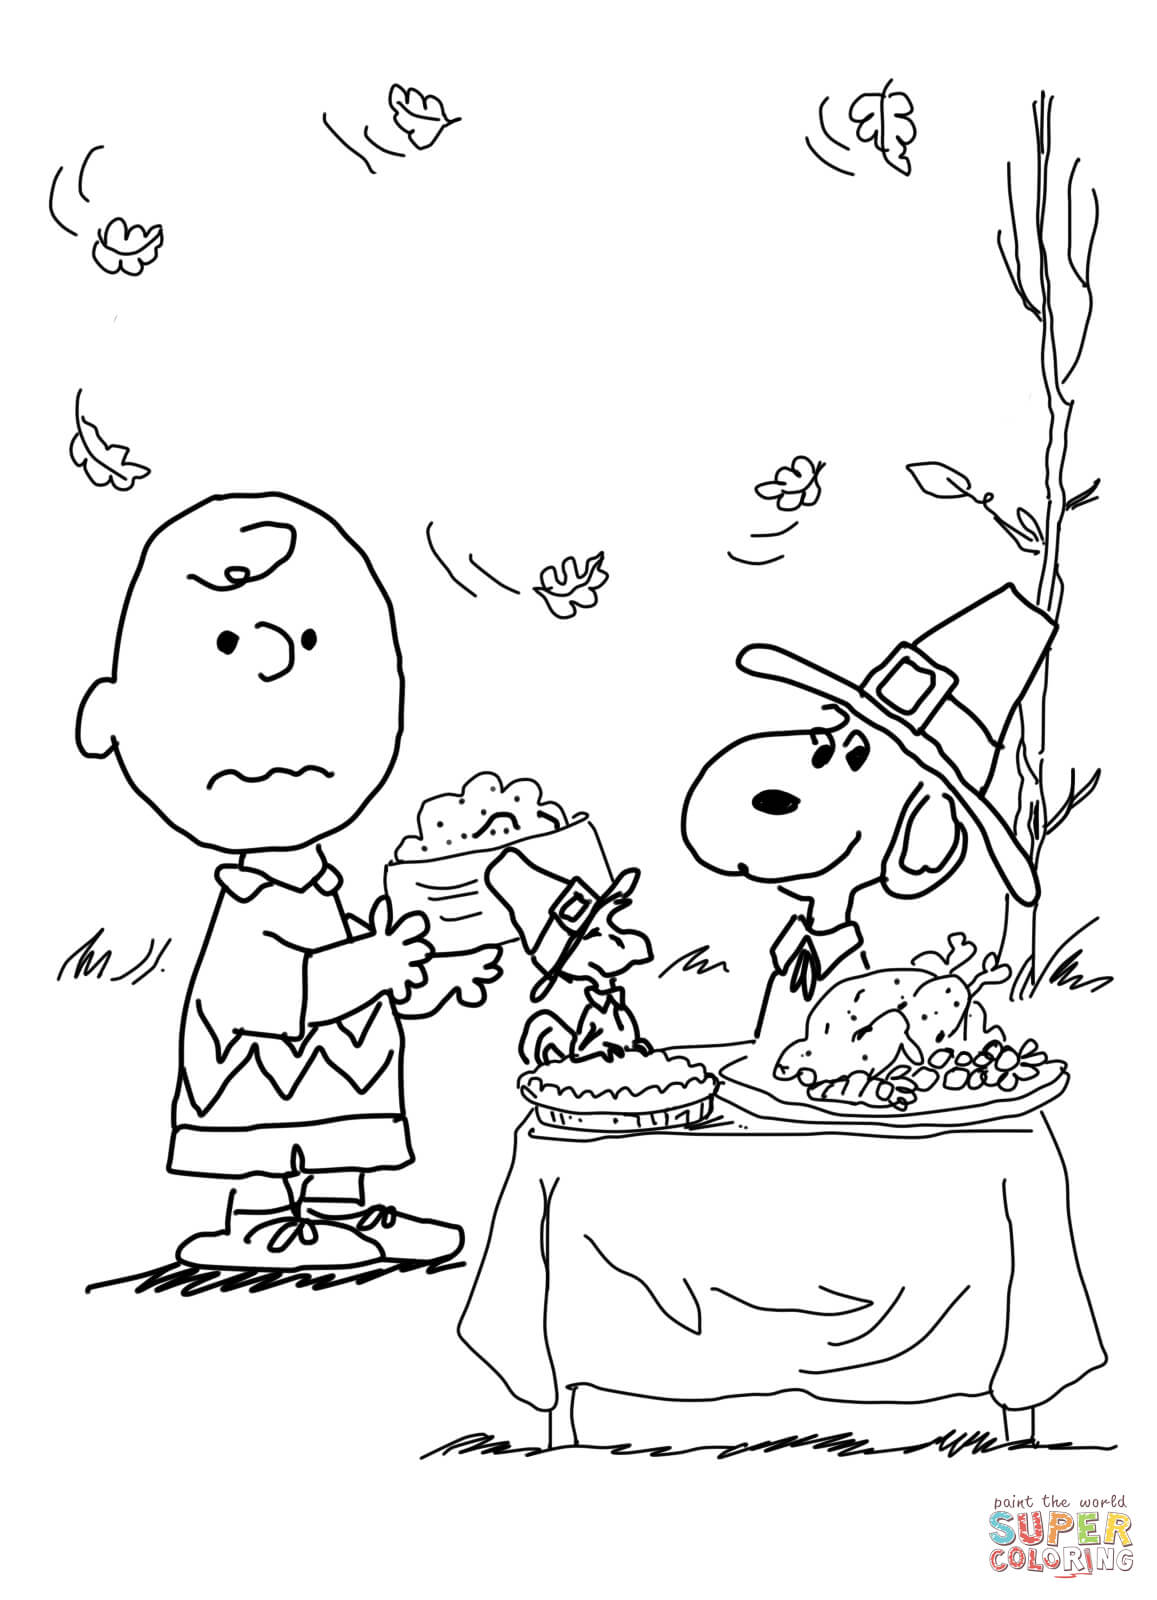 charlie brown thanksgiving coloring pages free printable thanksgiving coloring pages for kids cool2bkids pages charlie thanksgiving coloring brown free